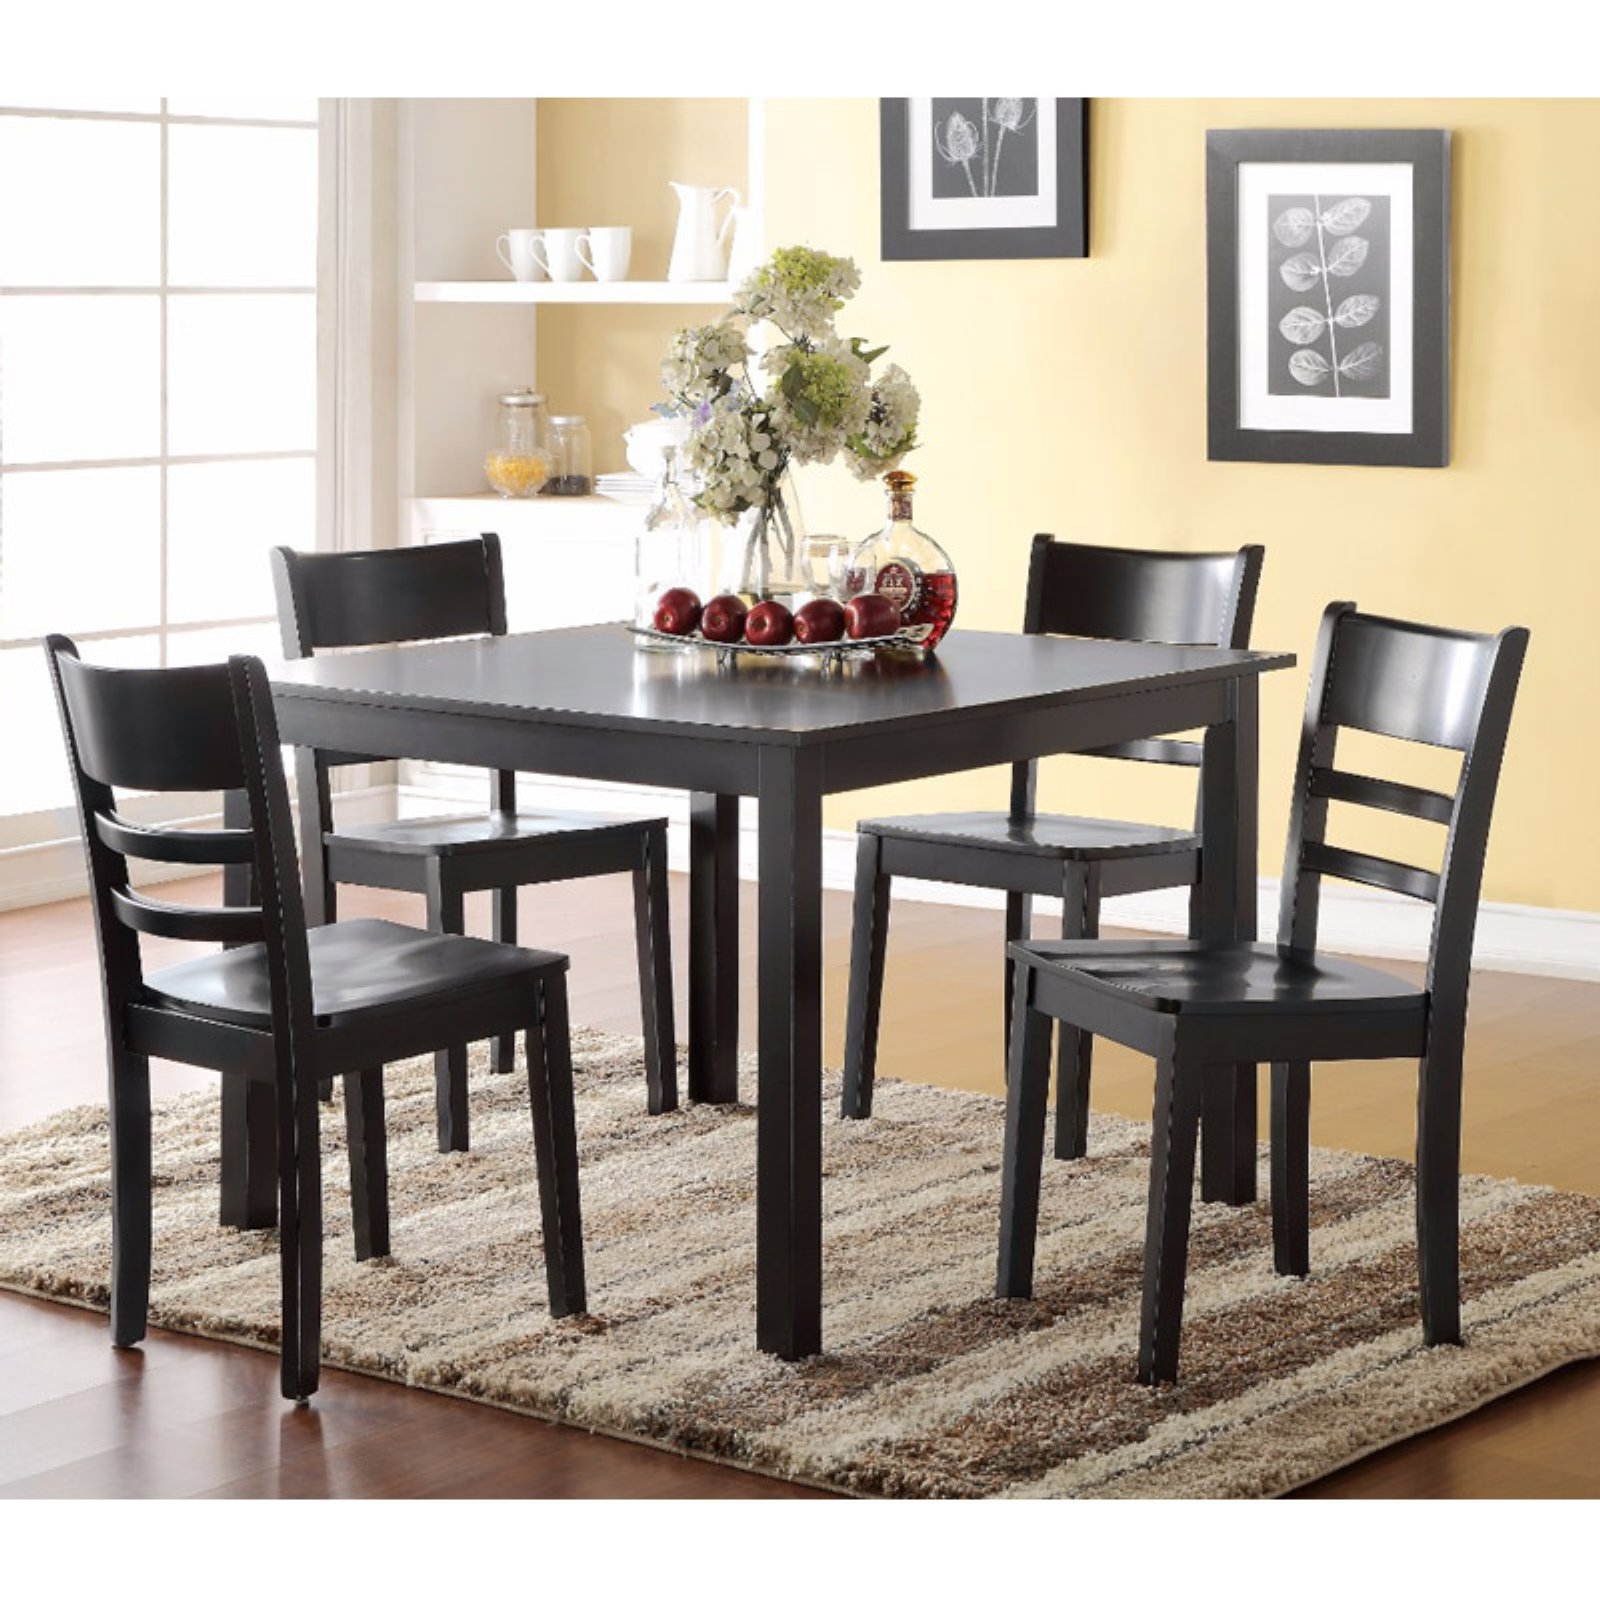 Most Recently Released Benzara Gracious 5 Piece Square Dining Table Set In 2019 Within Transitional 4 Seating Drop Leaf Casual Dining Tables (Gallery 9 of 30)